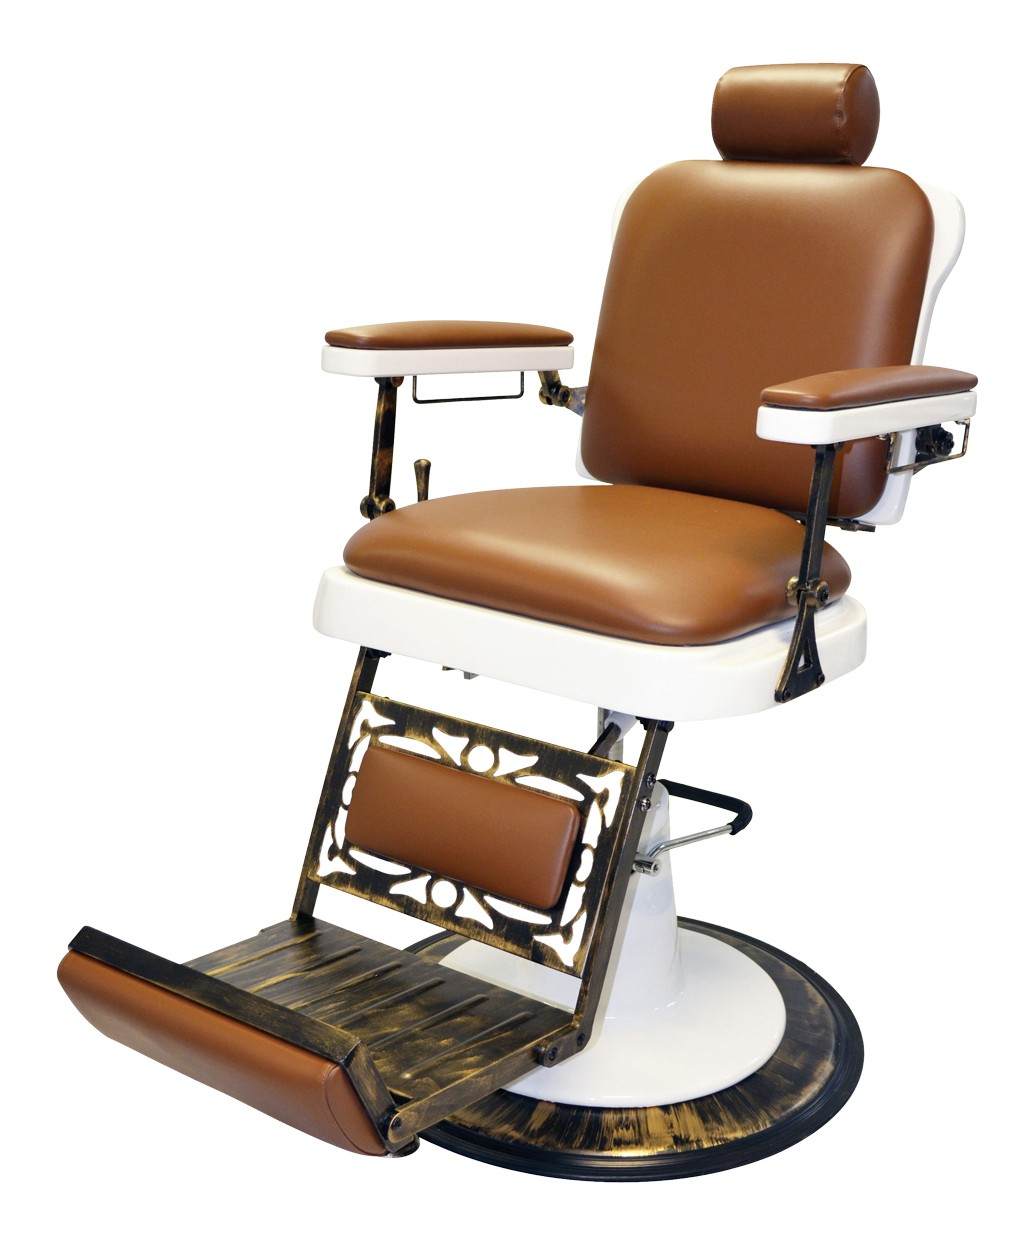 Classic  Antique Barber Chair Pibbs 662 King Barber Chair